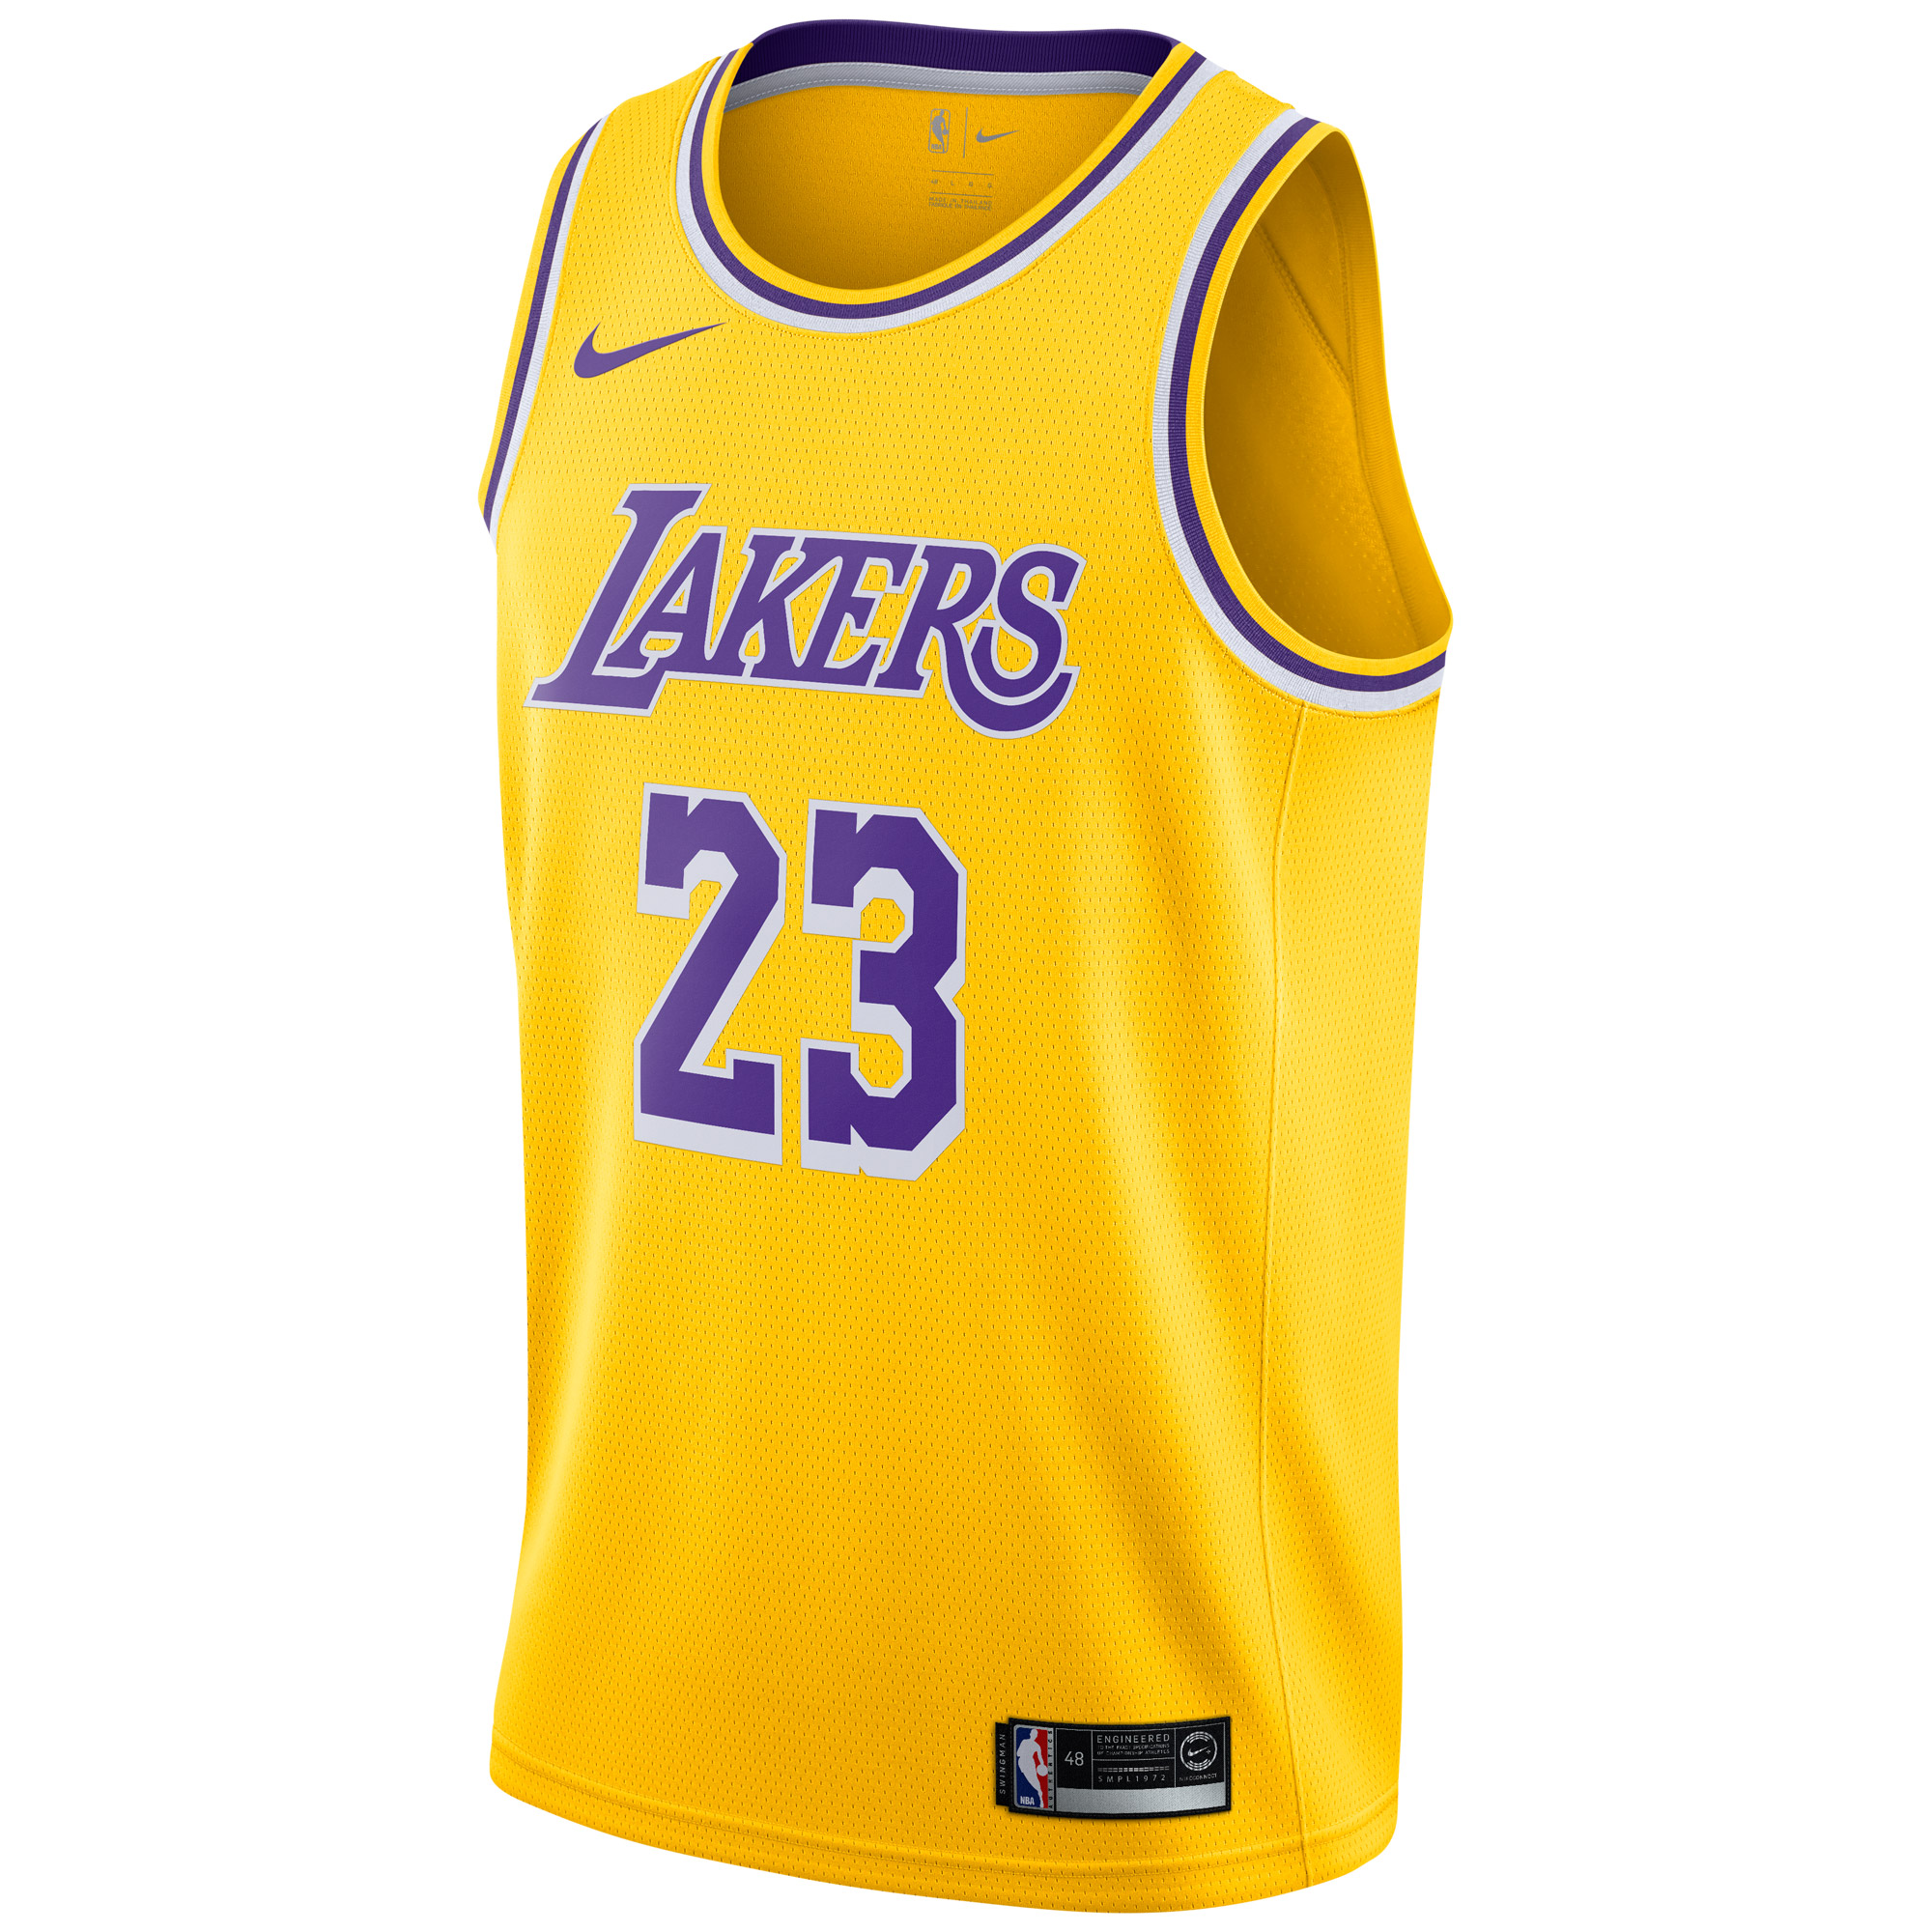 845cf38be7e NBA Jerseys - Walmart.com